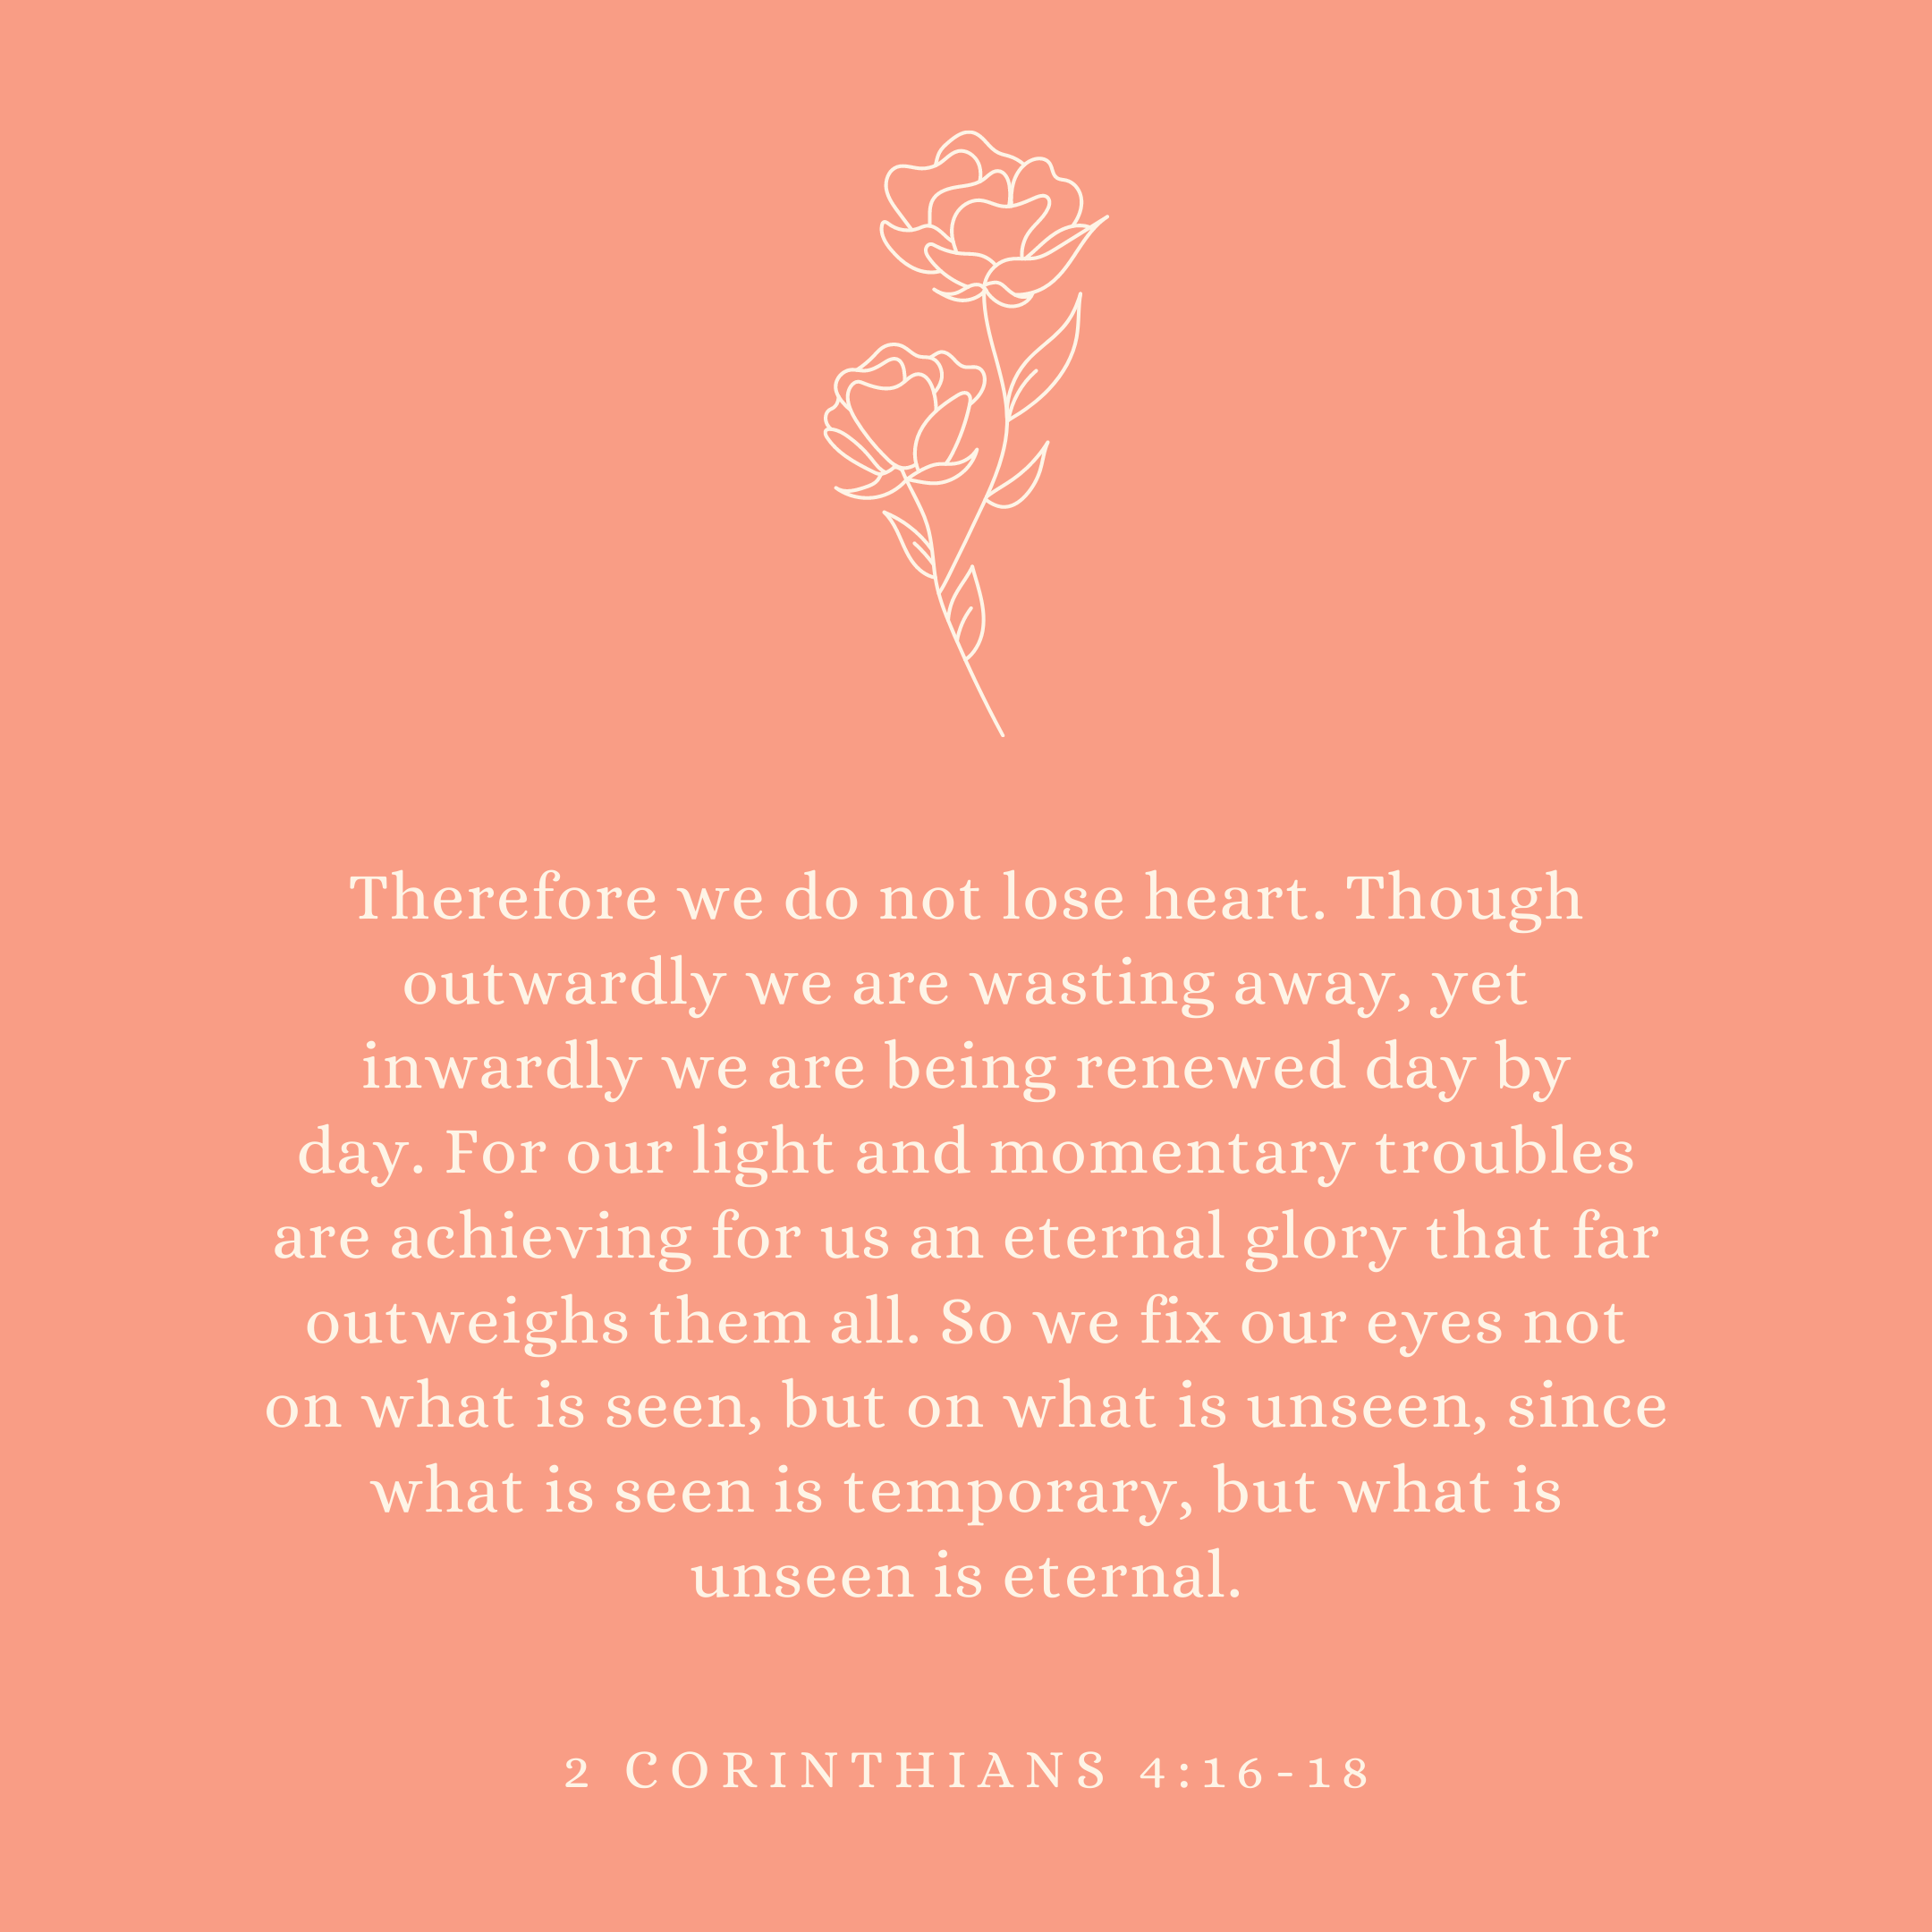 2 Corinthians 4:16-18 Therefore we do not lose heart. Though outwardly we are wasting away, yet inwardly we are being renewed day by day. For our light and momentary troubles are achieving for us an eternal glory that far outweighs them all. So we fix our eyes not on what is seen, but on what is unseen, since what is seen is temporary, but what is unseen is eternal.